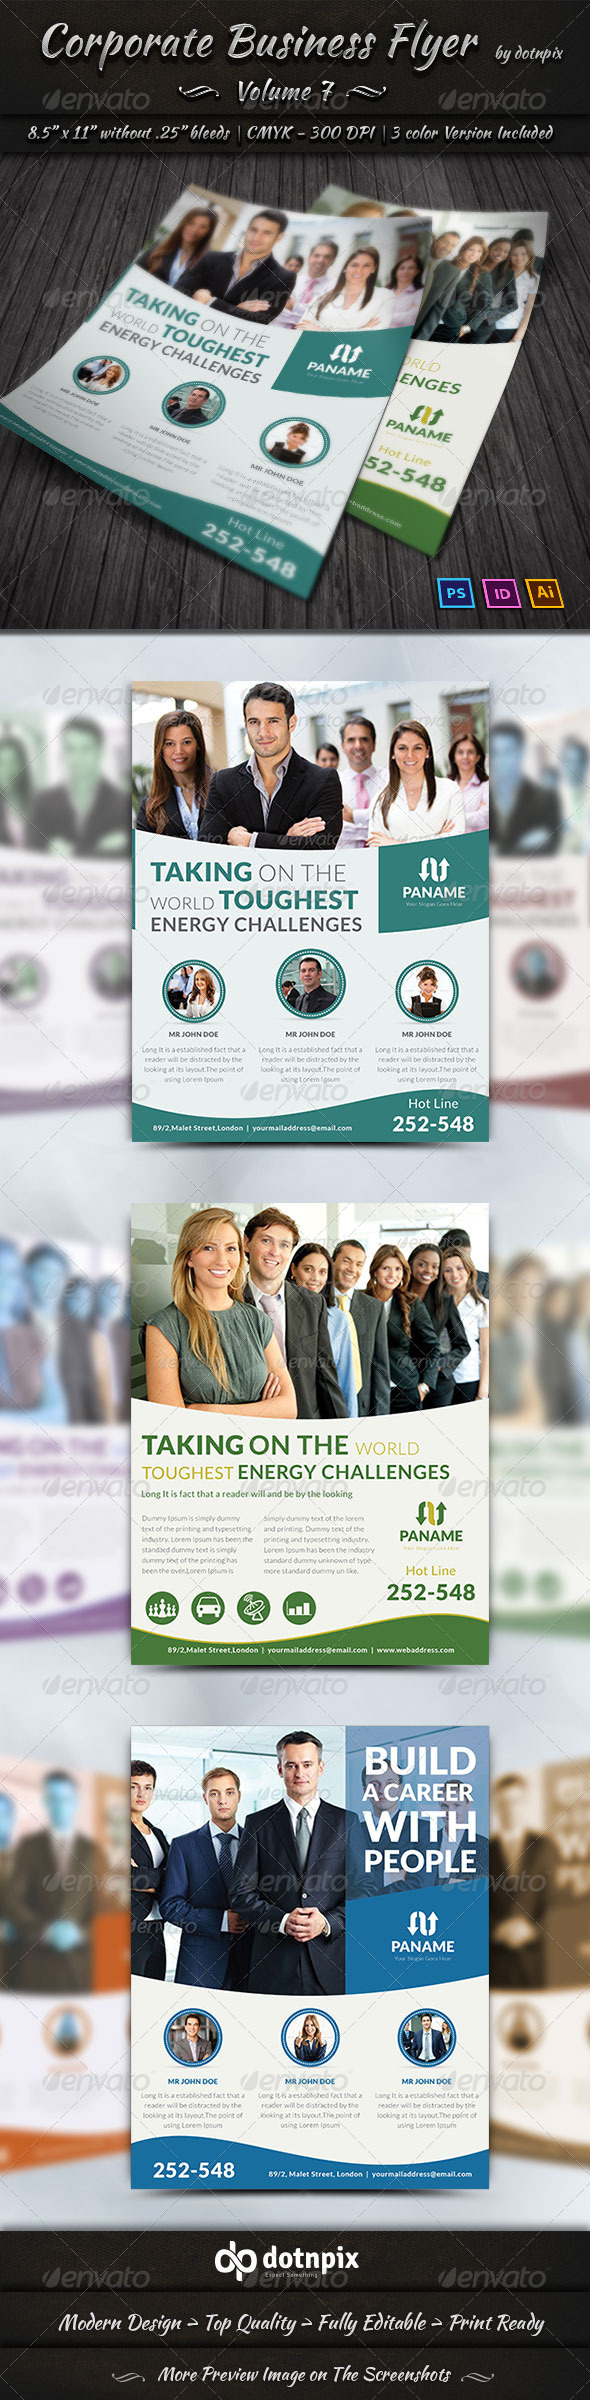 GraphicRiver Corporate Business Flyer Volume 7 7032852